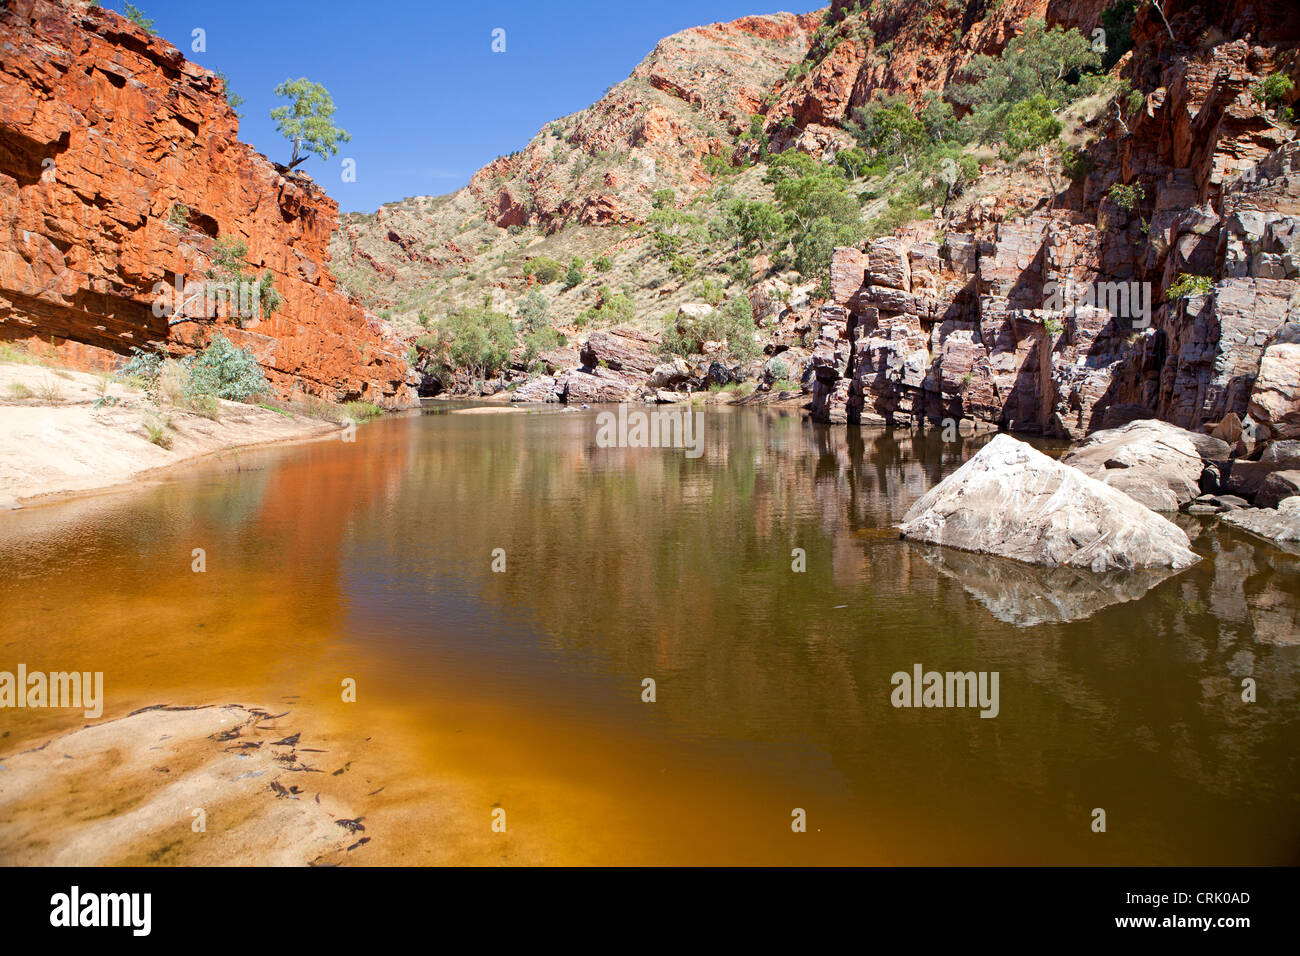 Ormiston Gorge in the West MacDonnell Ranges - Stock Image